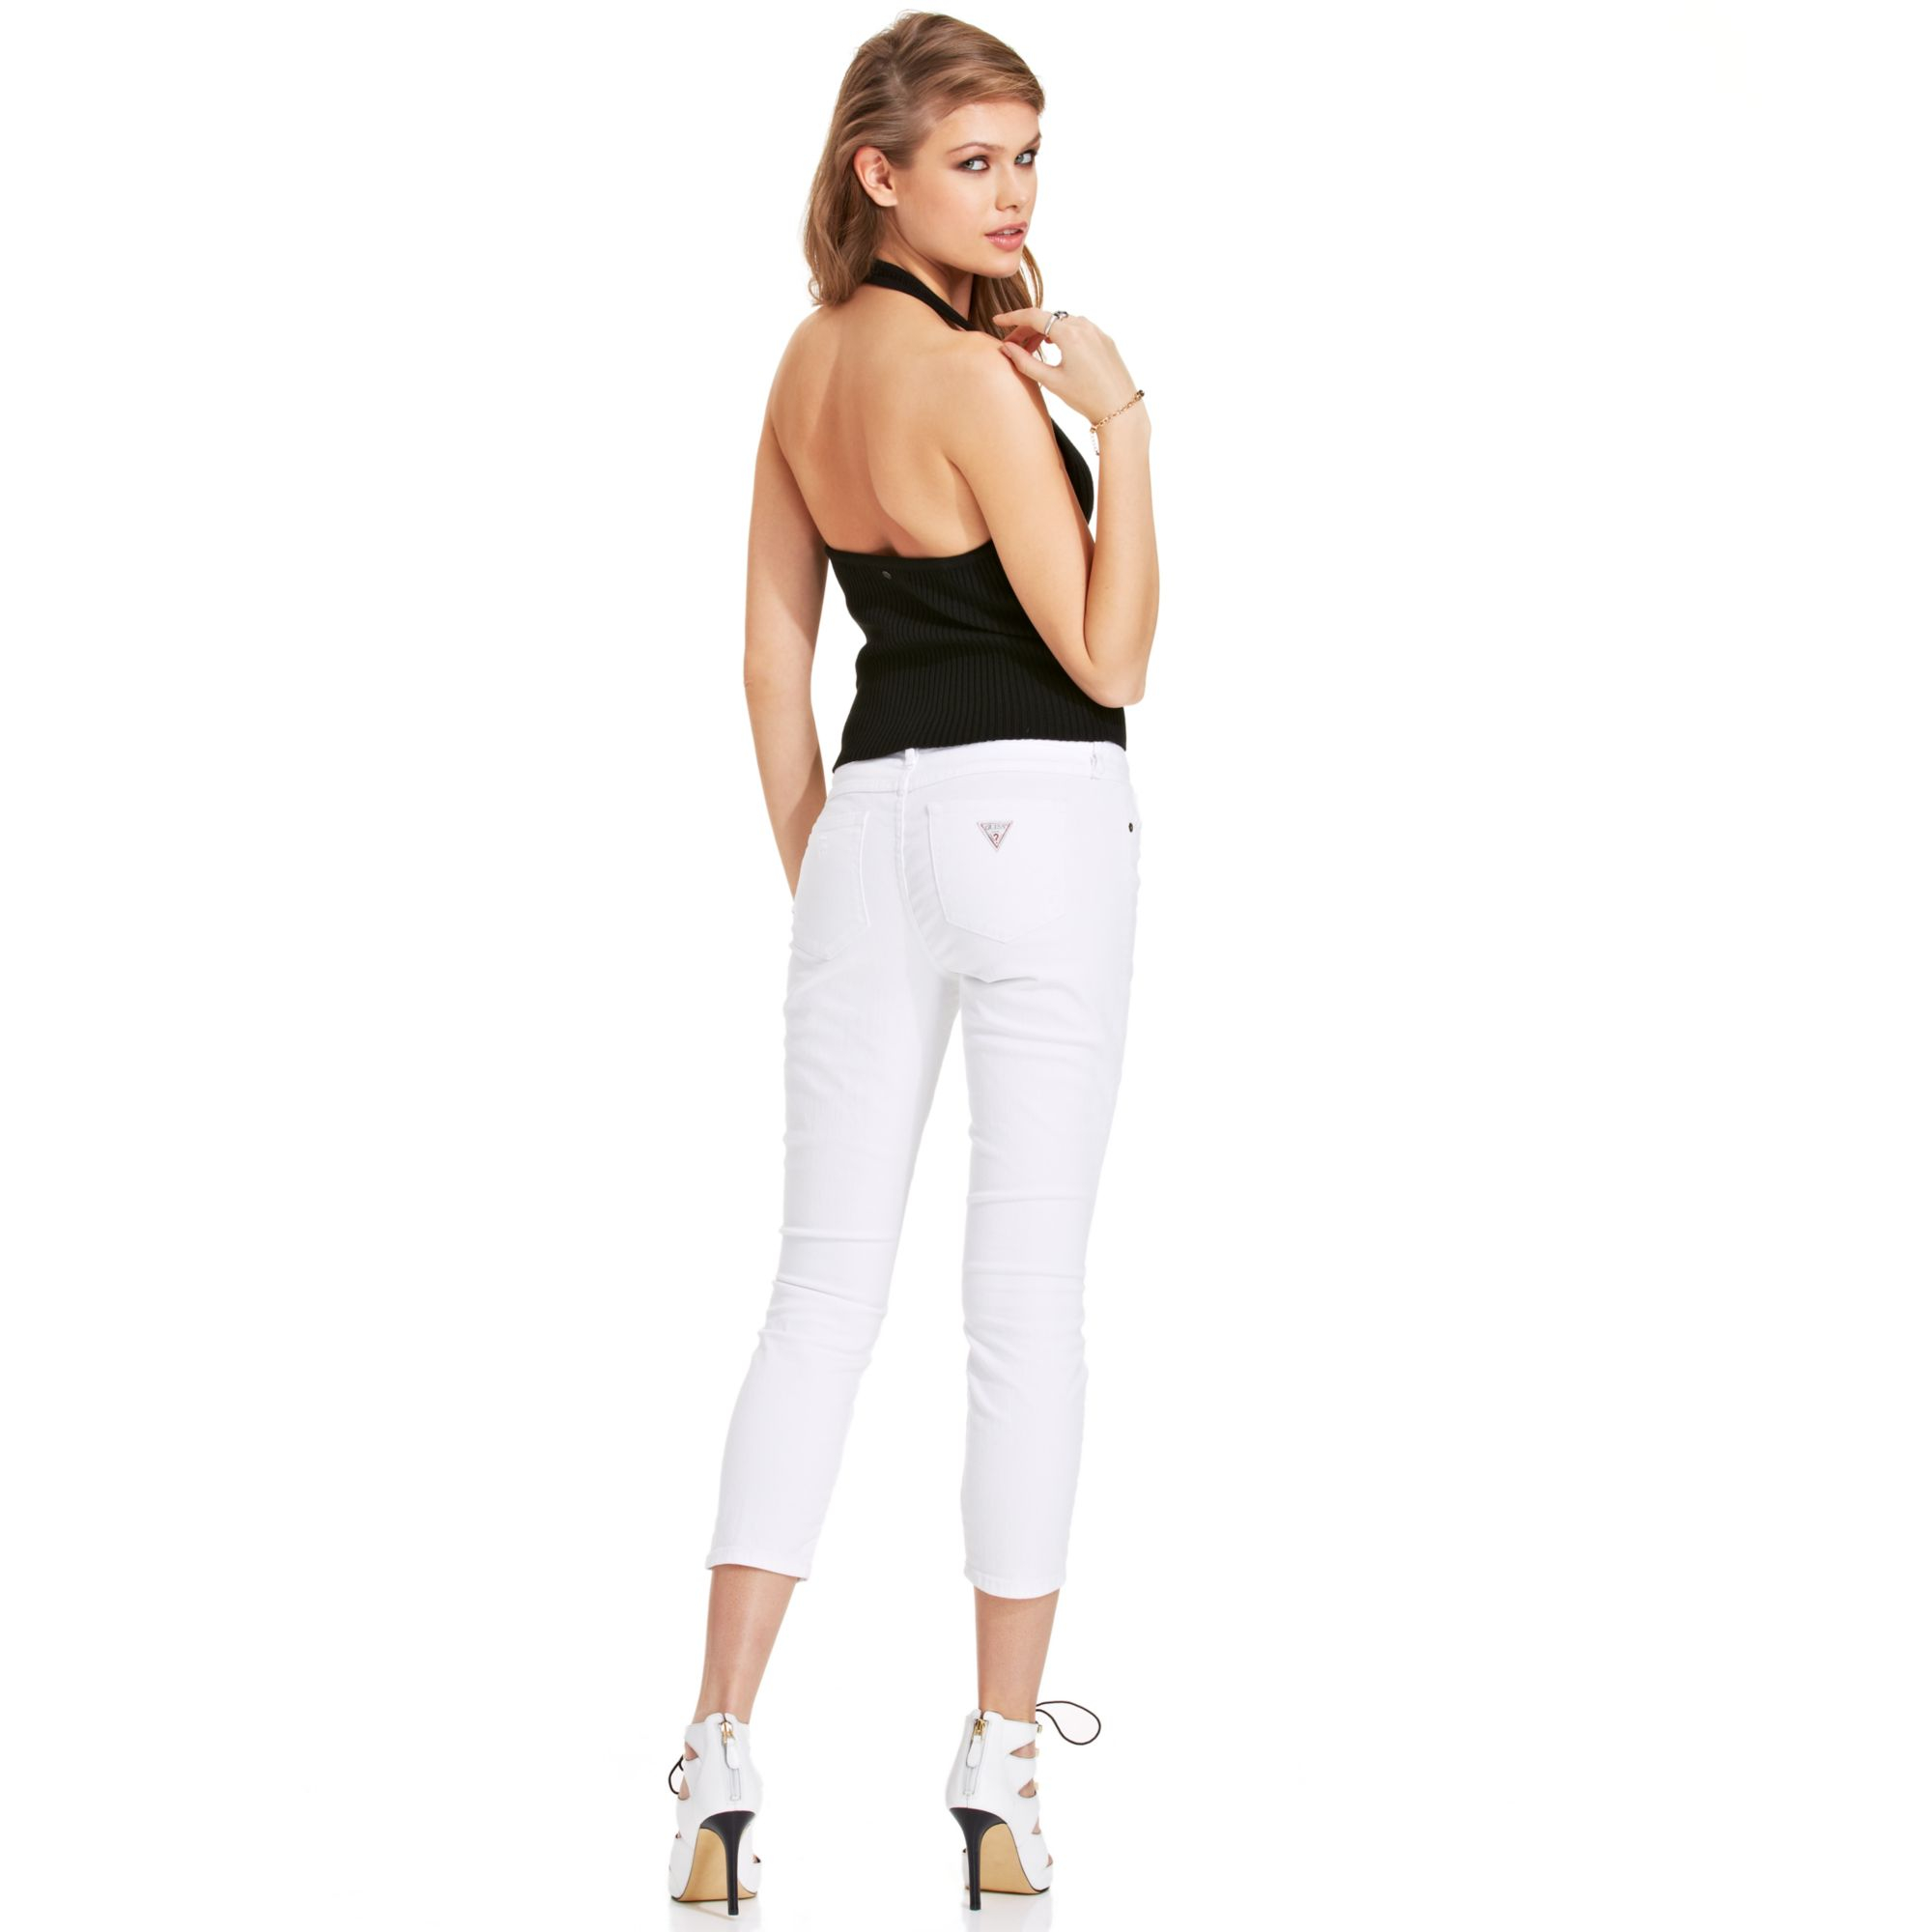 lyst - guess brittney slim destroyed capris jeans in white